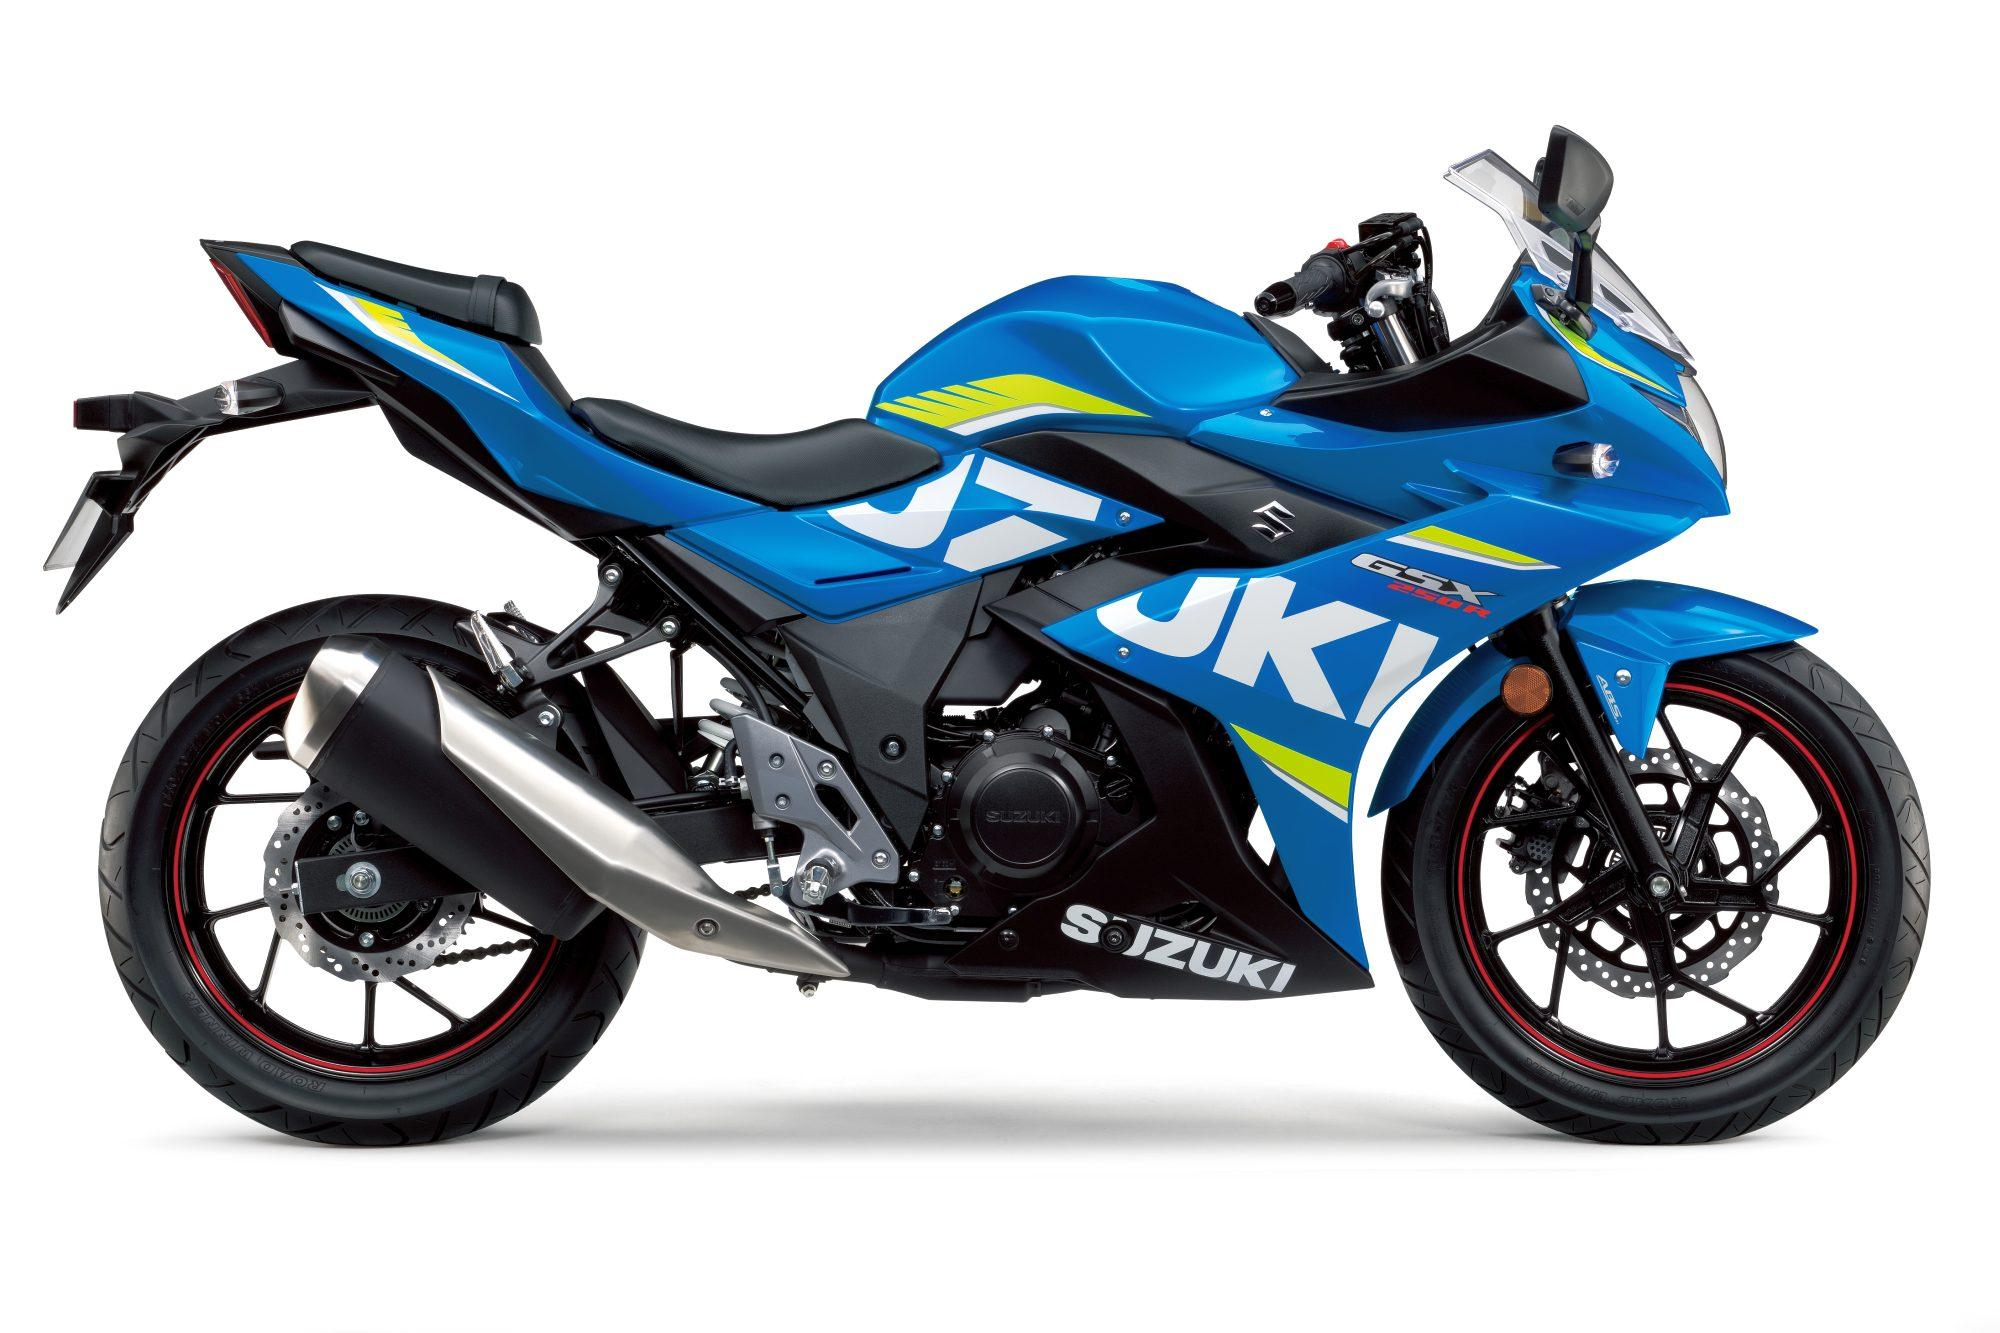 suzuki gsx250r 2017. Black Bedroom Furniture Sets. Home Design Ideas